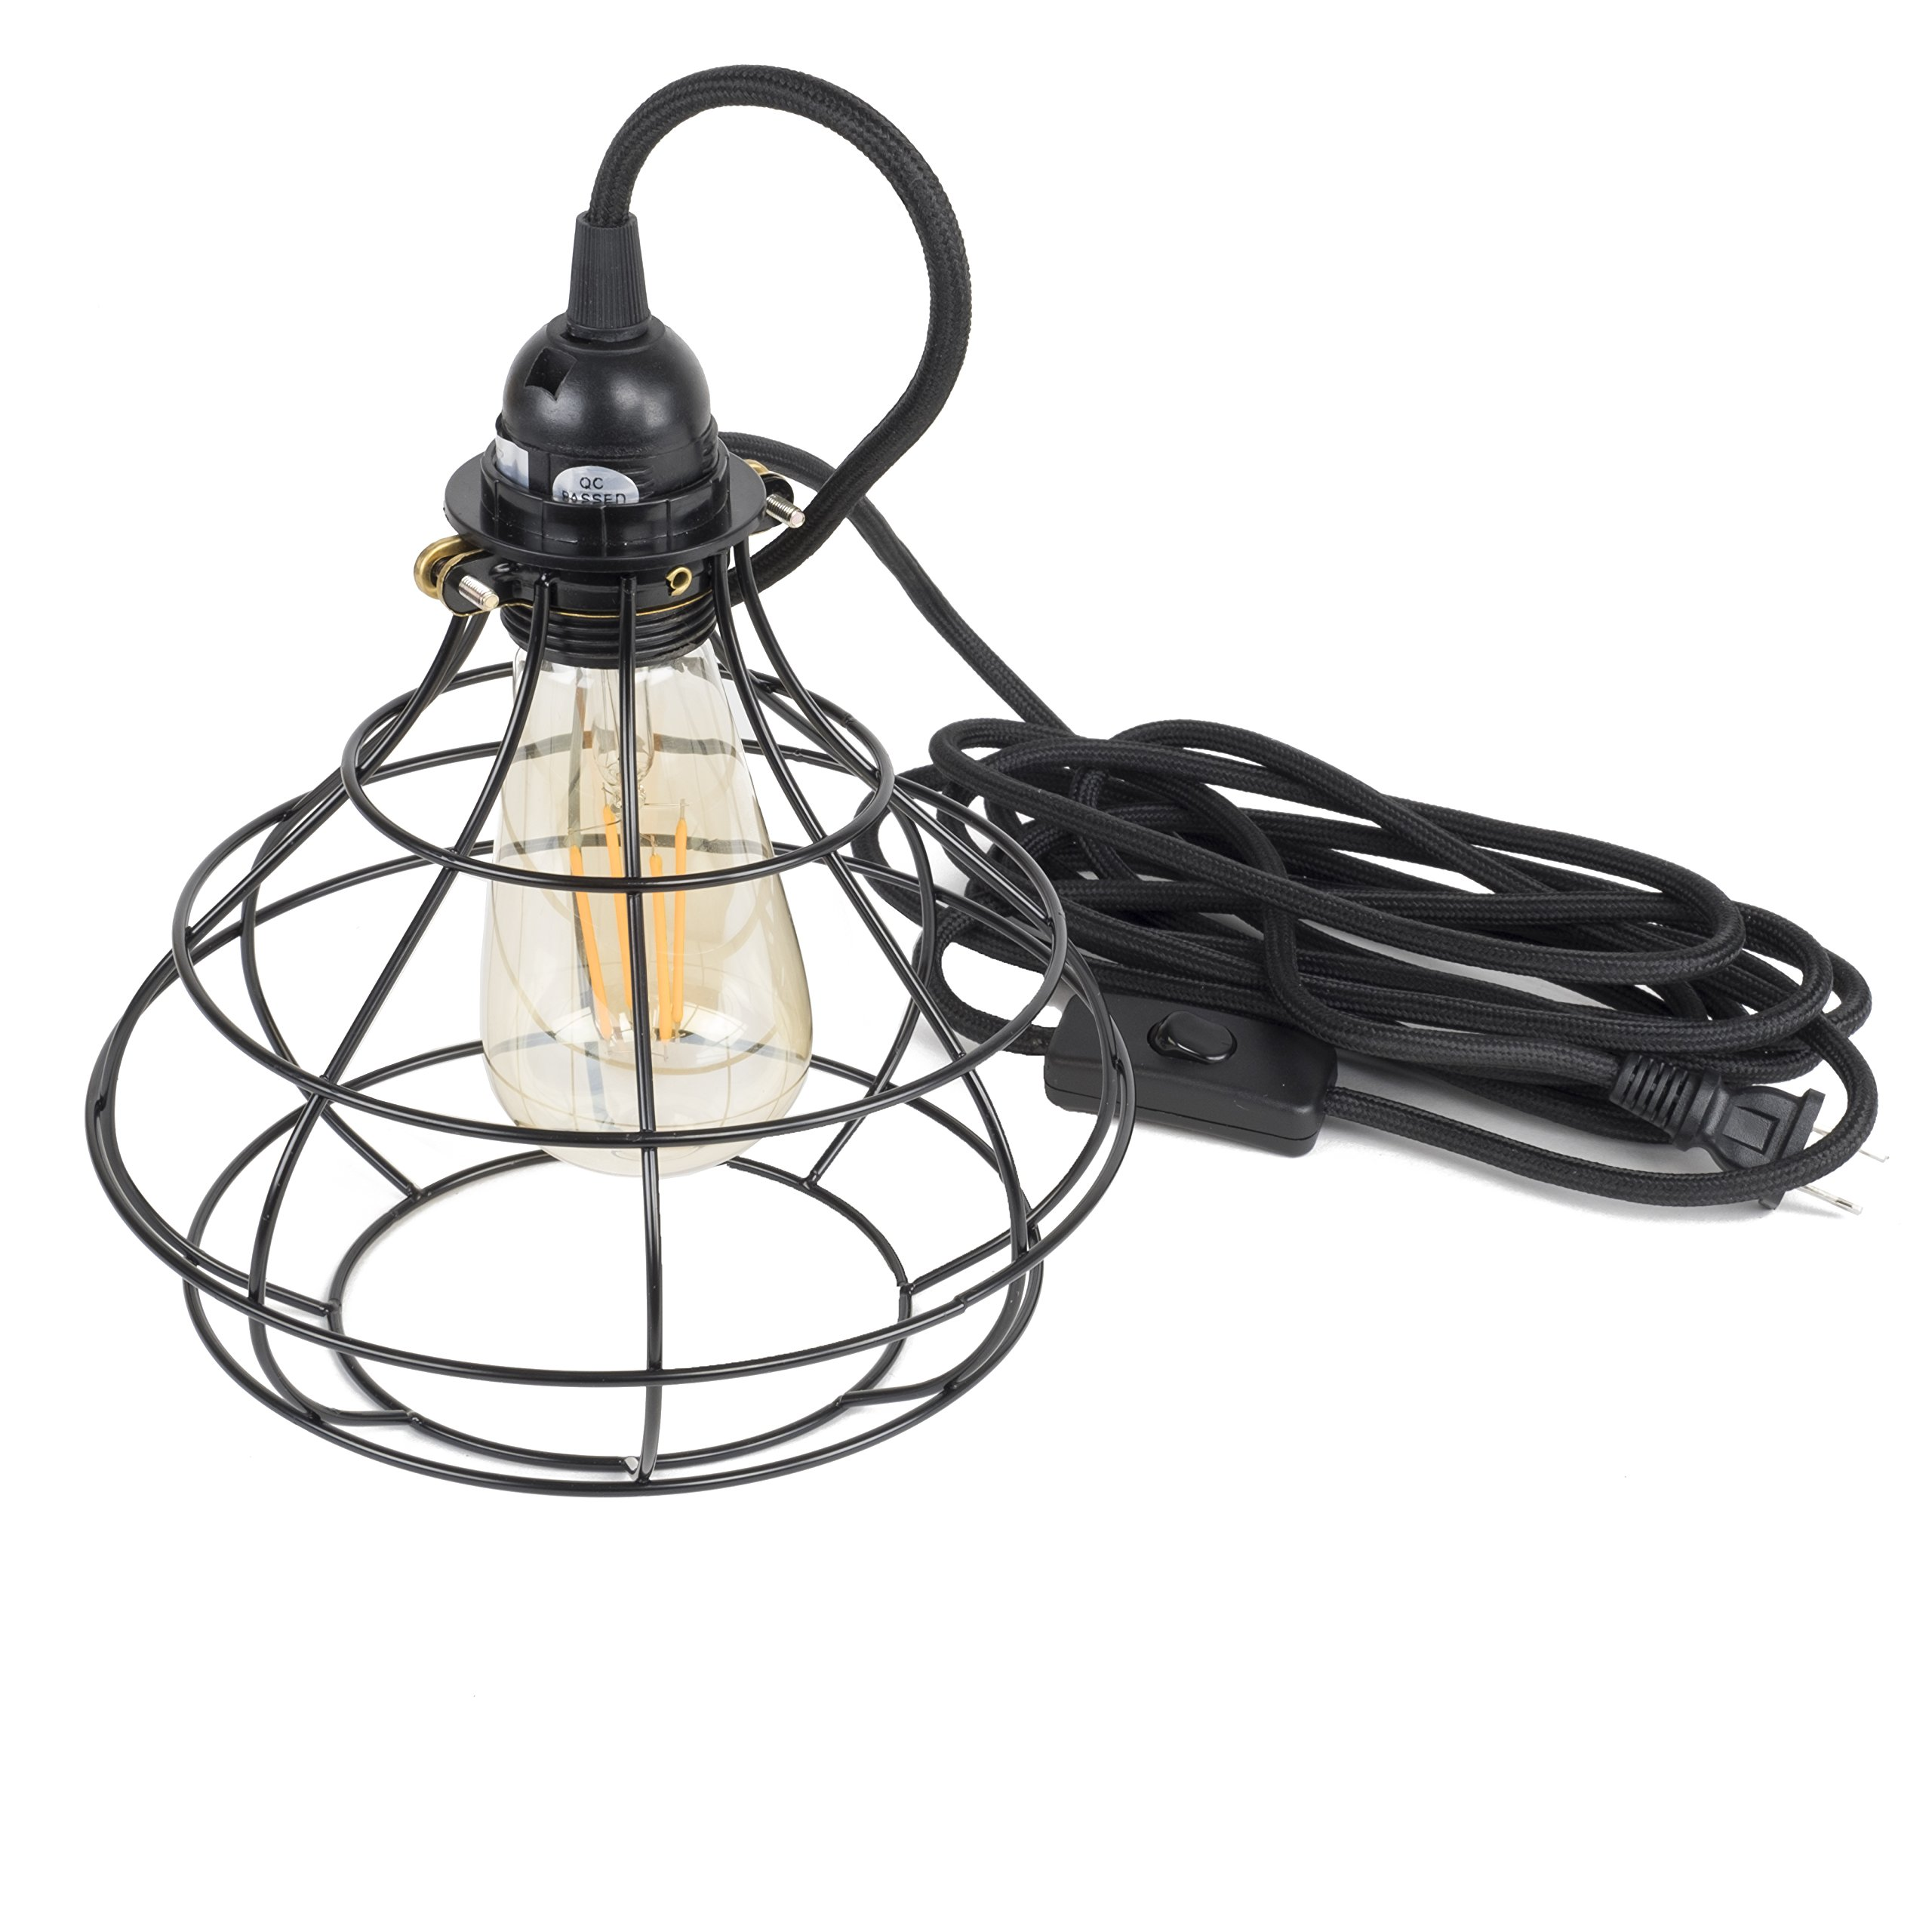 Industrial Cage Pendant Light with 15' Black Fabric Plug-in Cord and Toggle Switch Includes Edison LED Bulb in Black by Rustic State (Image #3)